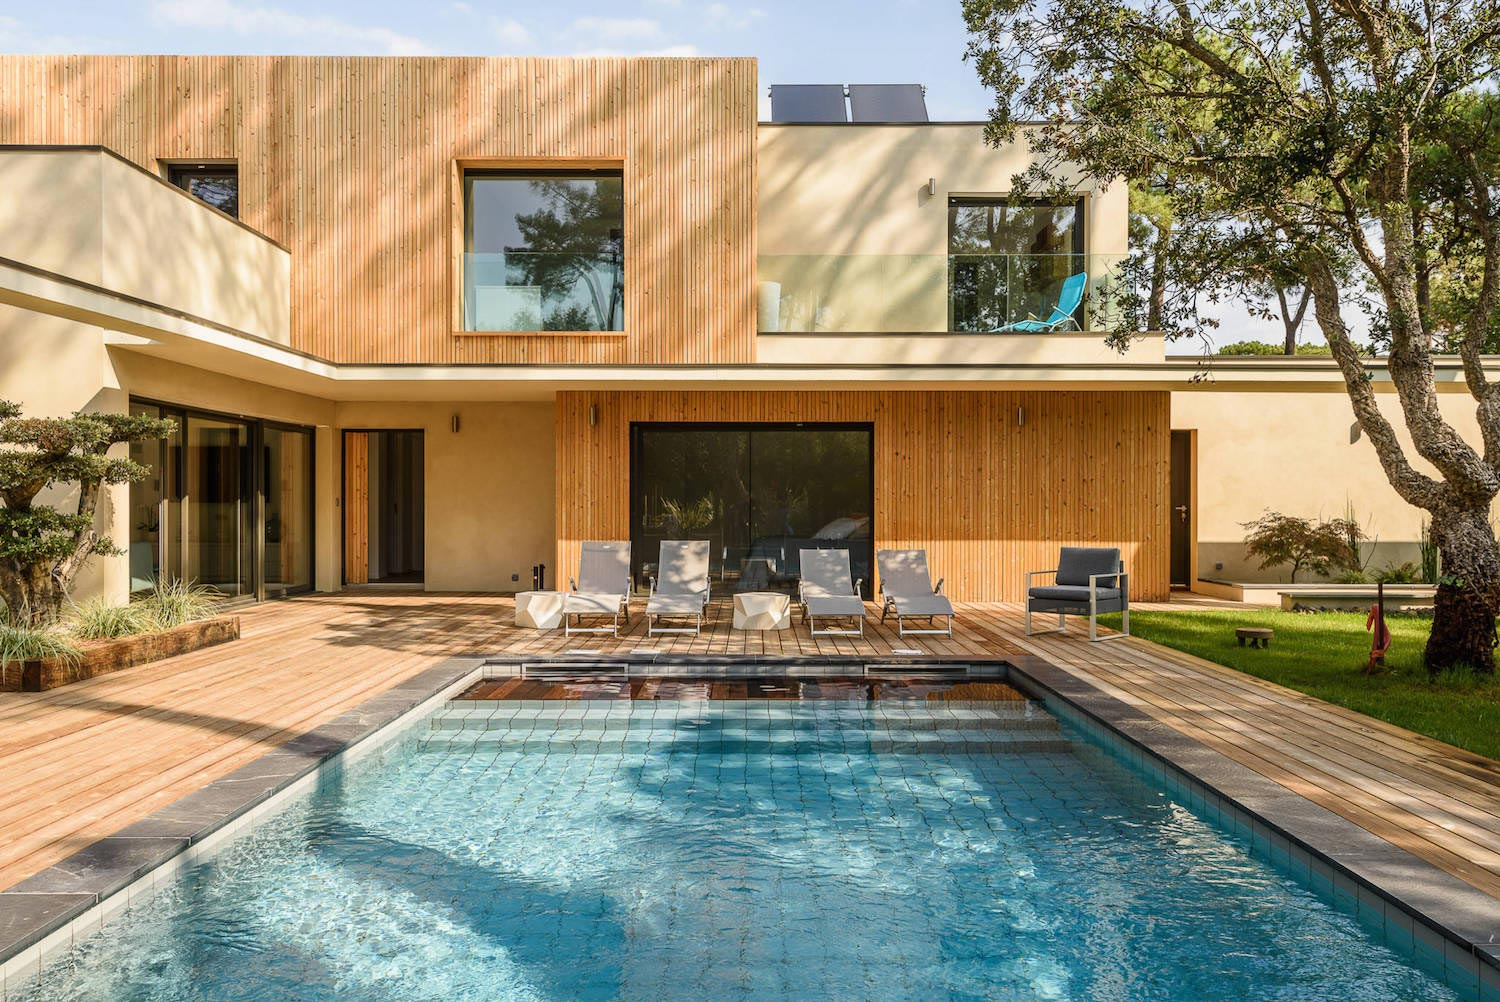 Modern Wooden Residence Surrounded By Greenery Caandesign Architecture And Home Design Blog